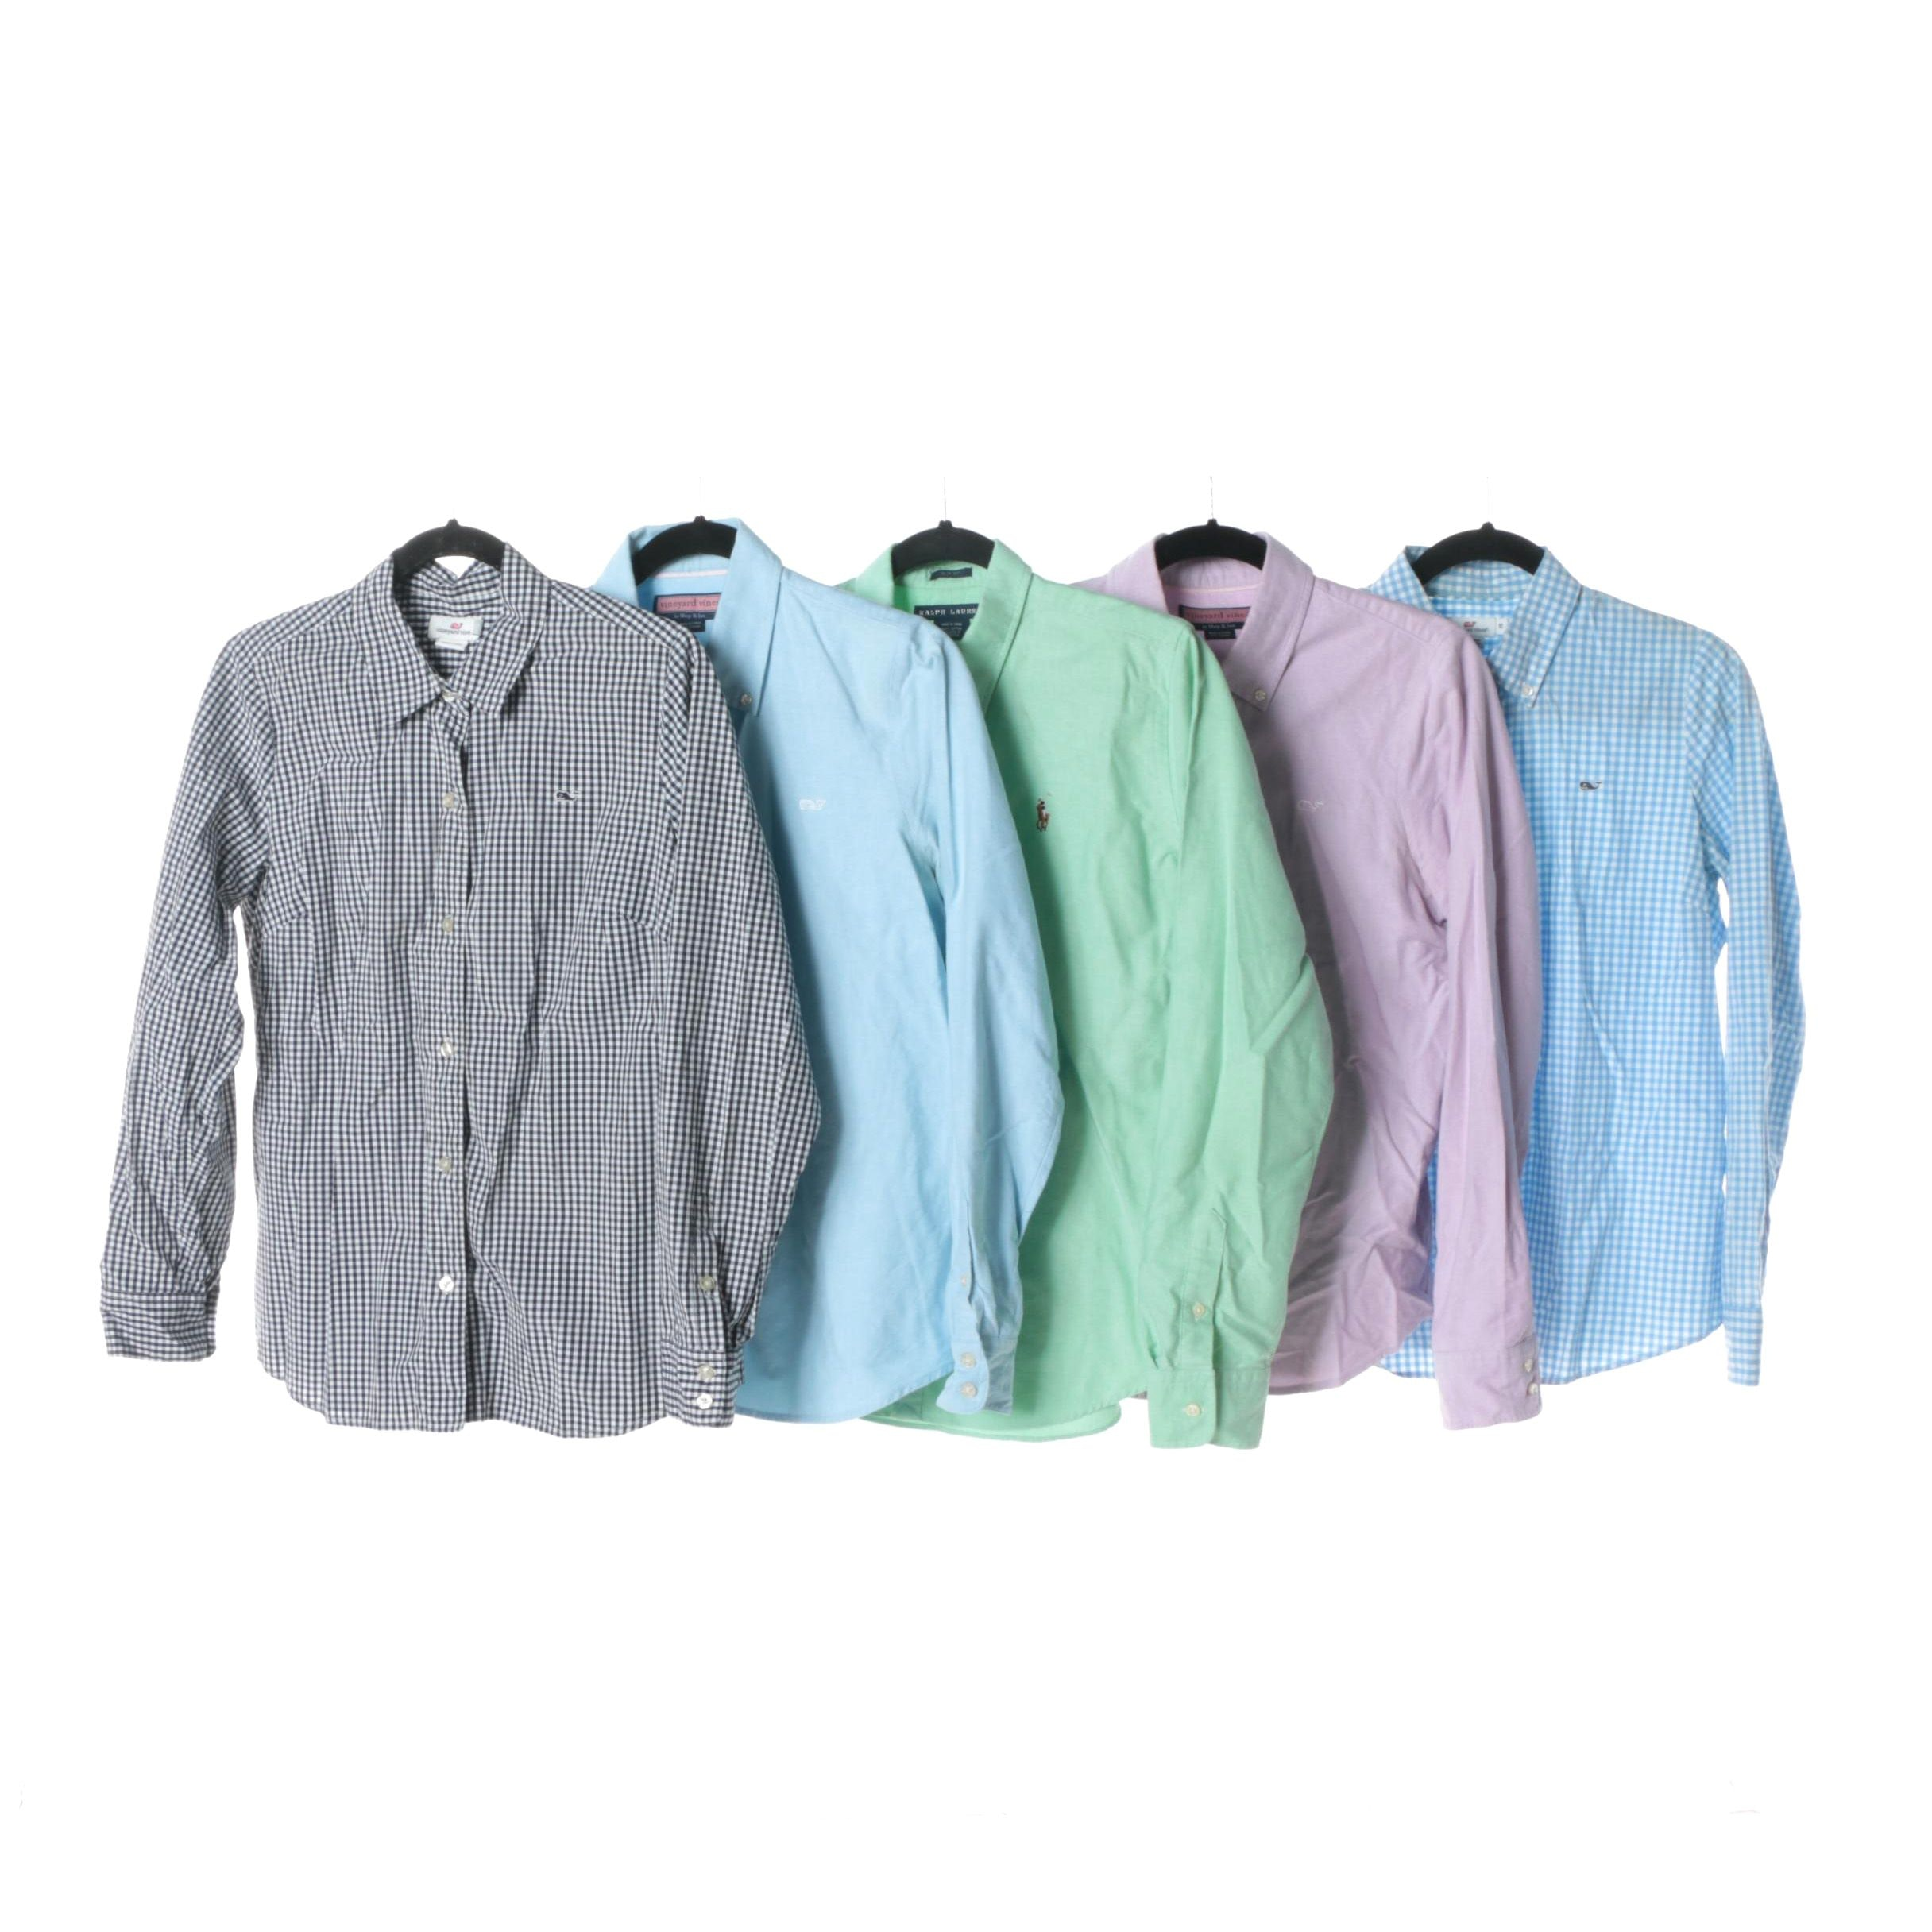 Women's Vineyard Vines with Ralph Lauren Button-Down Shirts